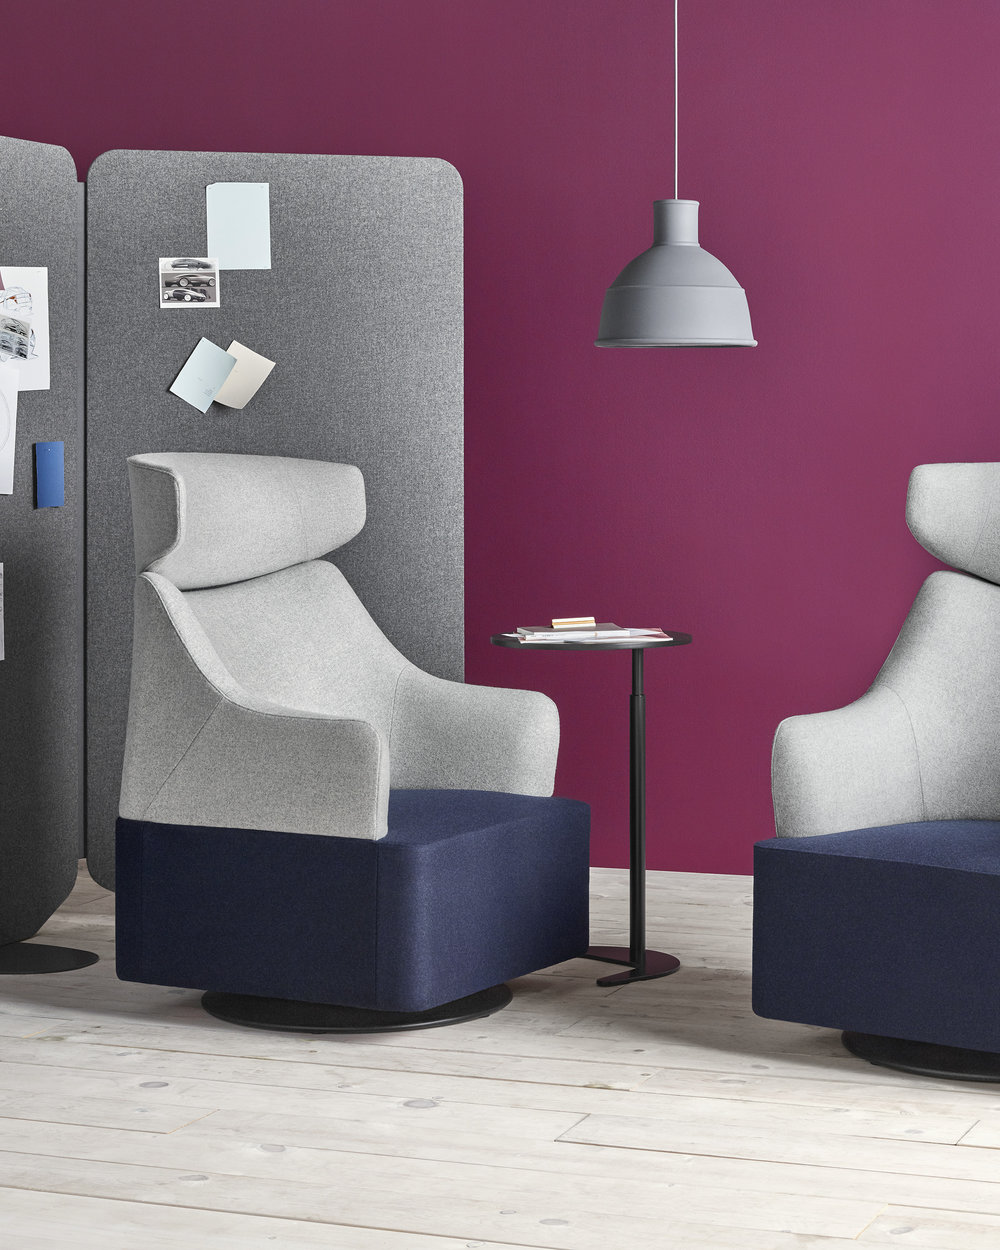 https://www.hermanmiller.com/products/seating/lounge-seating/plex-lounge-furniture/